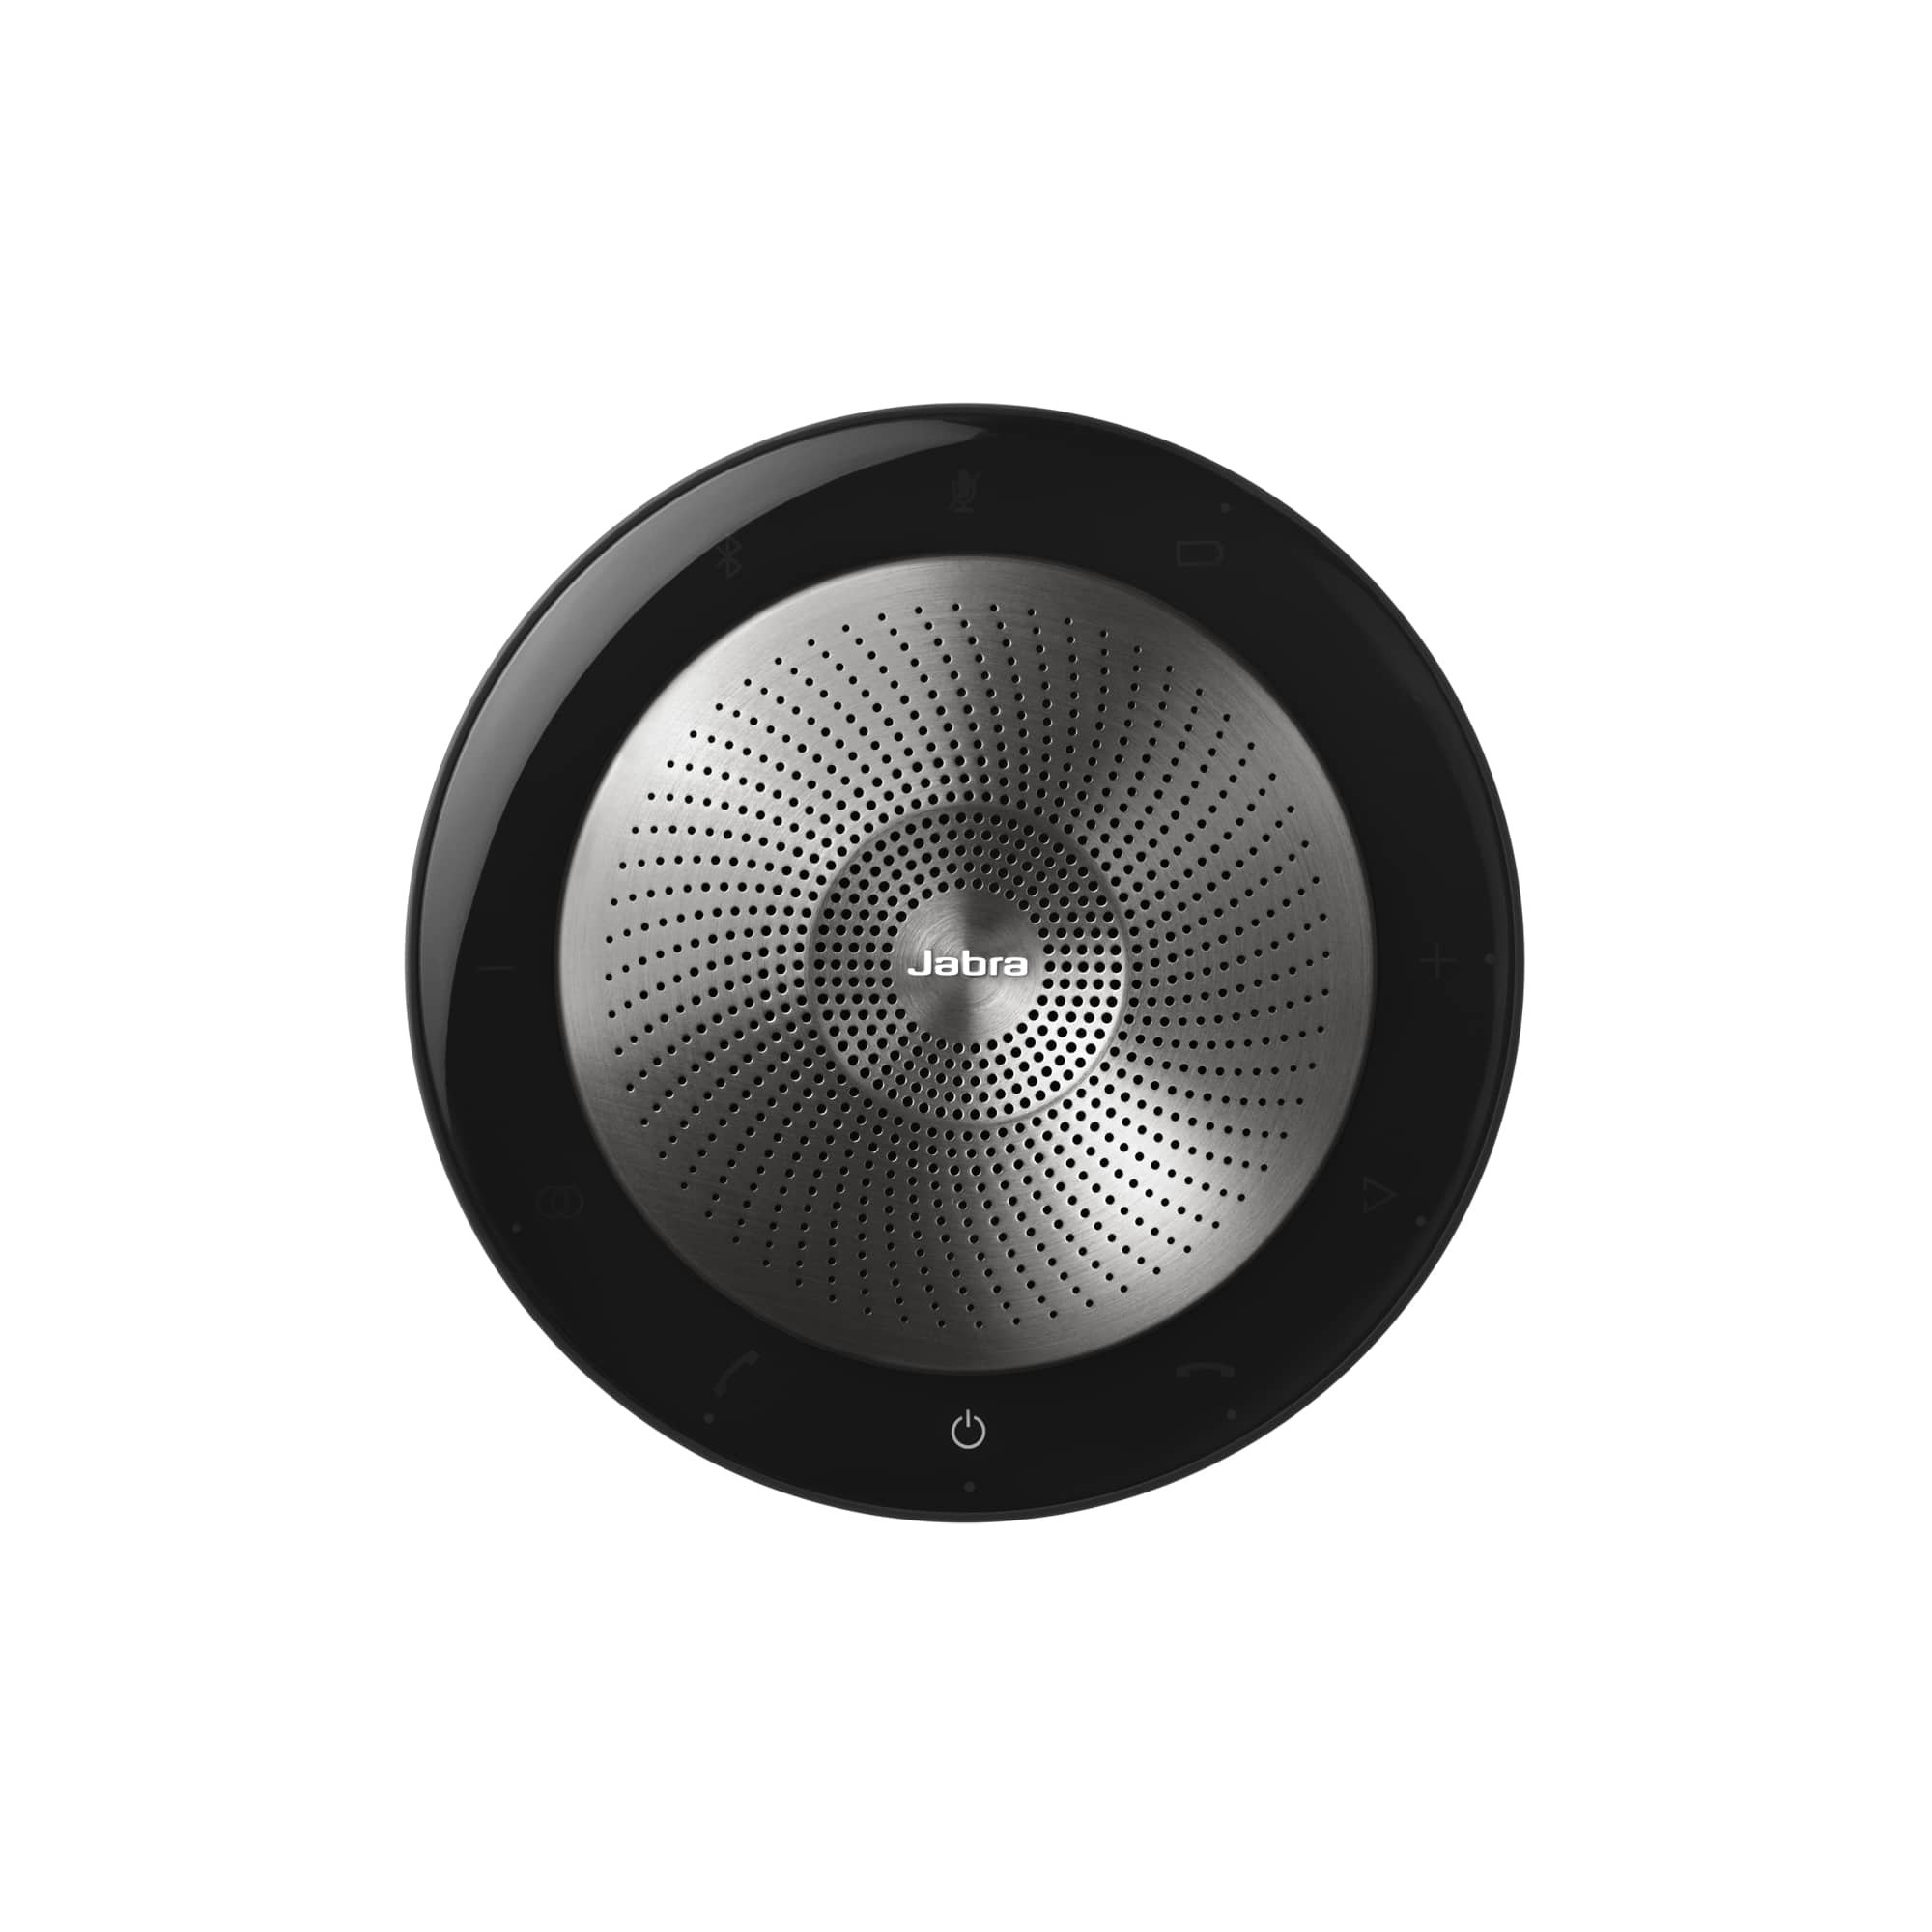 Jabra Speak 710 Wireless Bluetooth Speaker for Softphone and Mobile Phone - Android & Apple Compatible - MS Optimized by Jabra